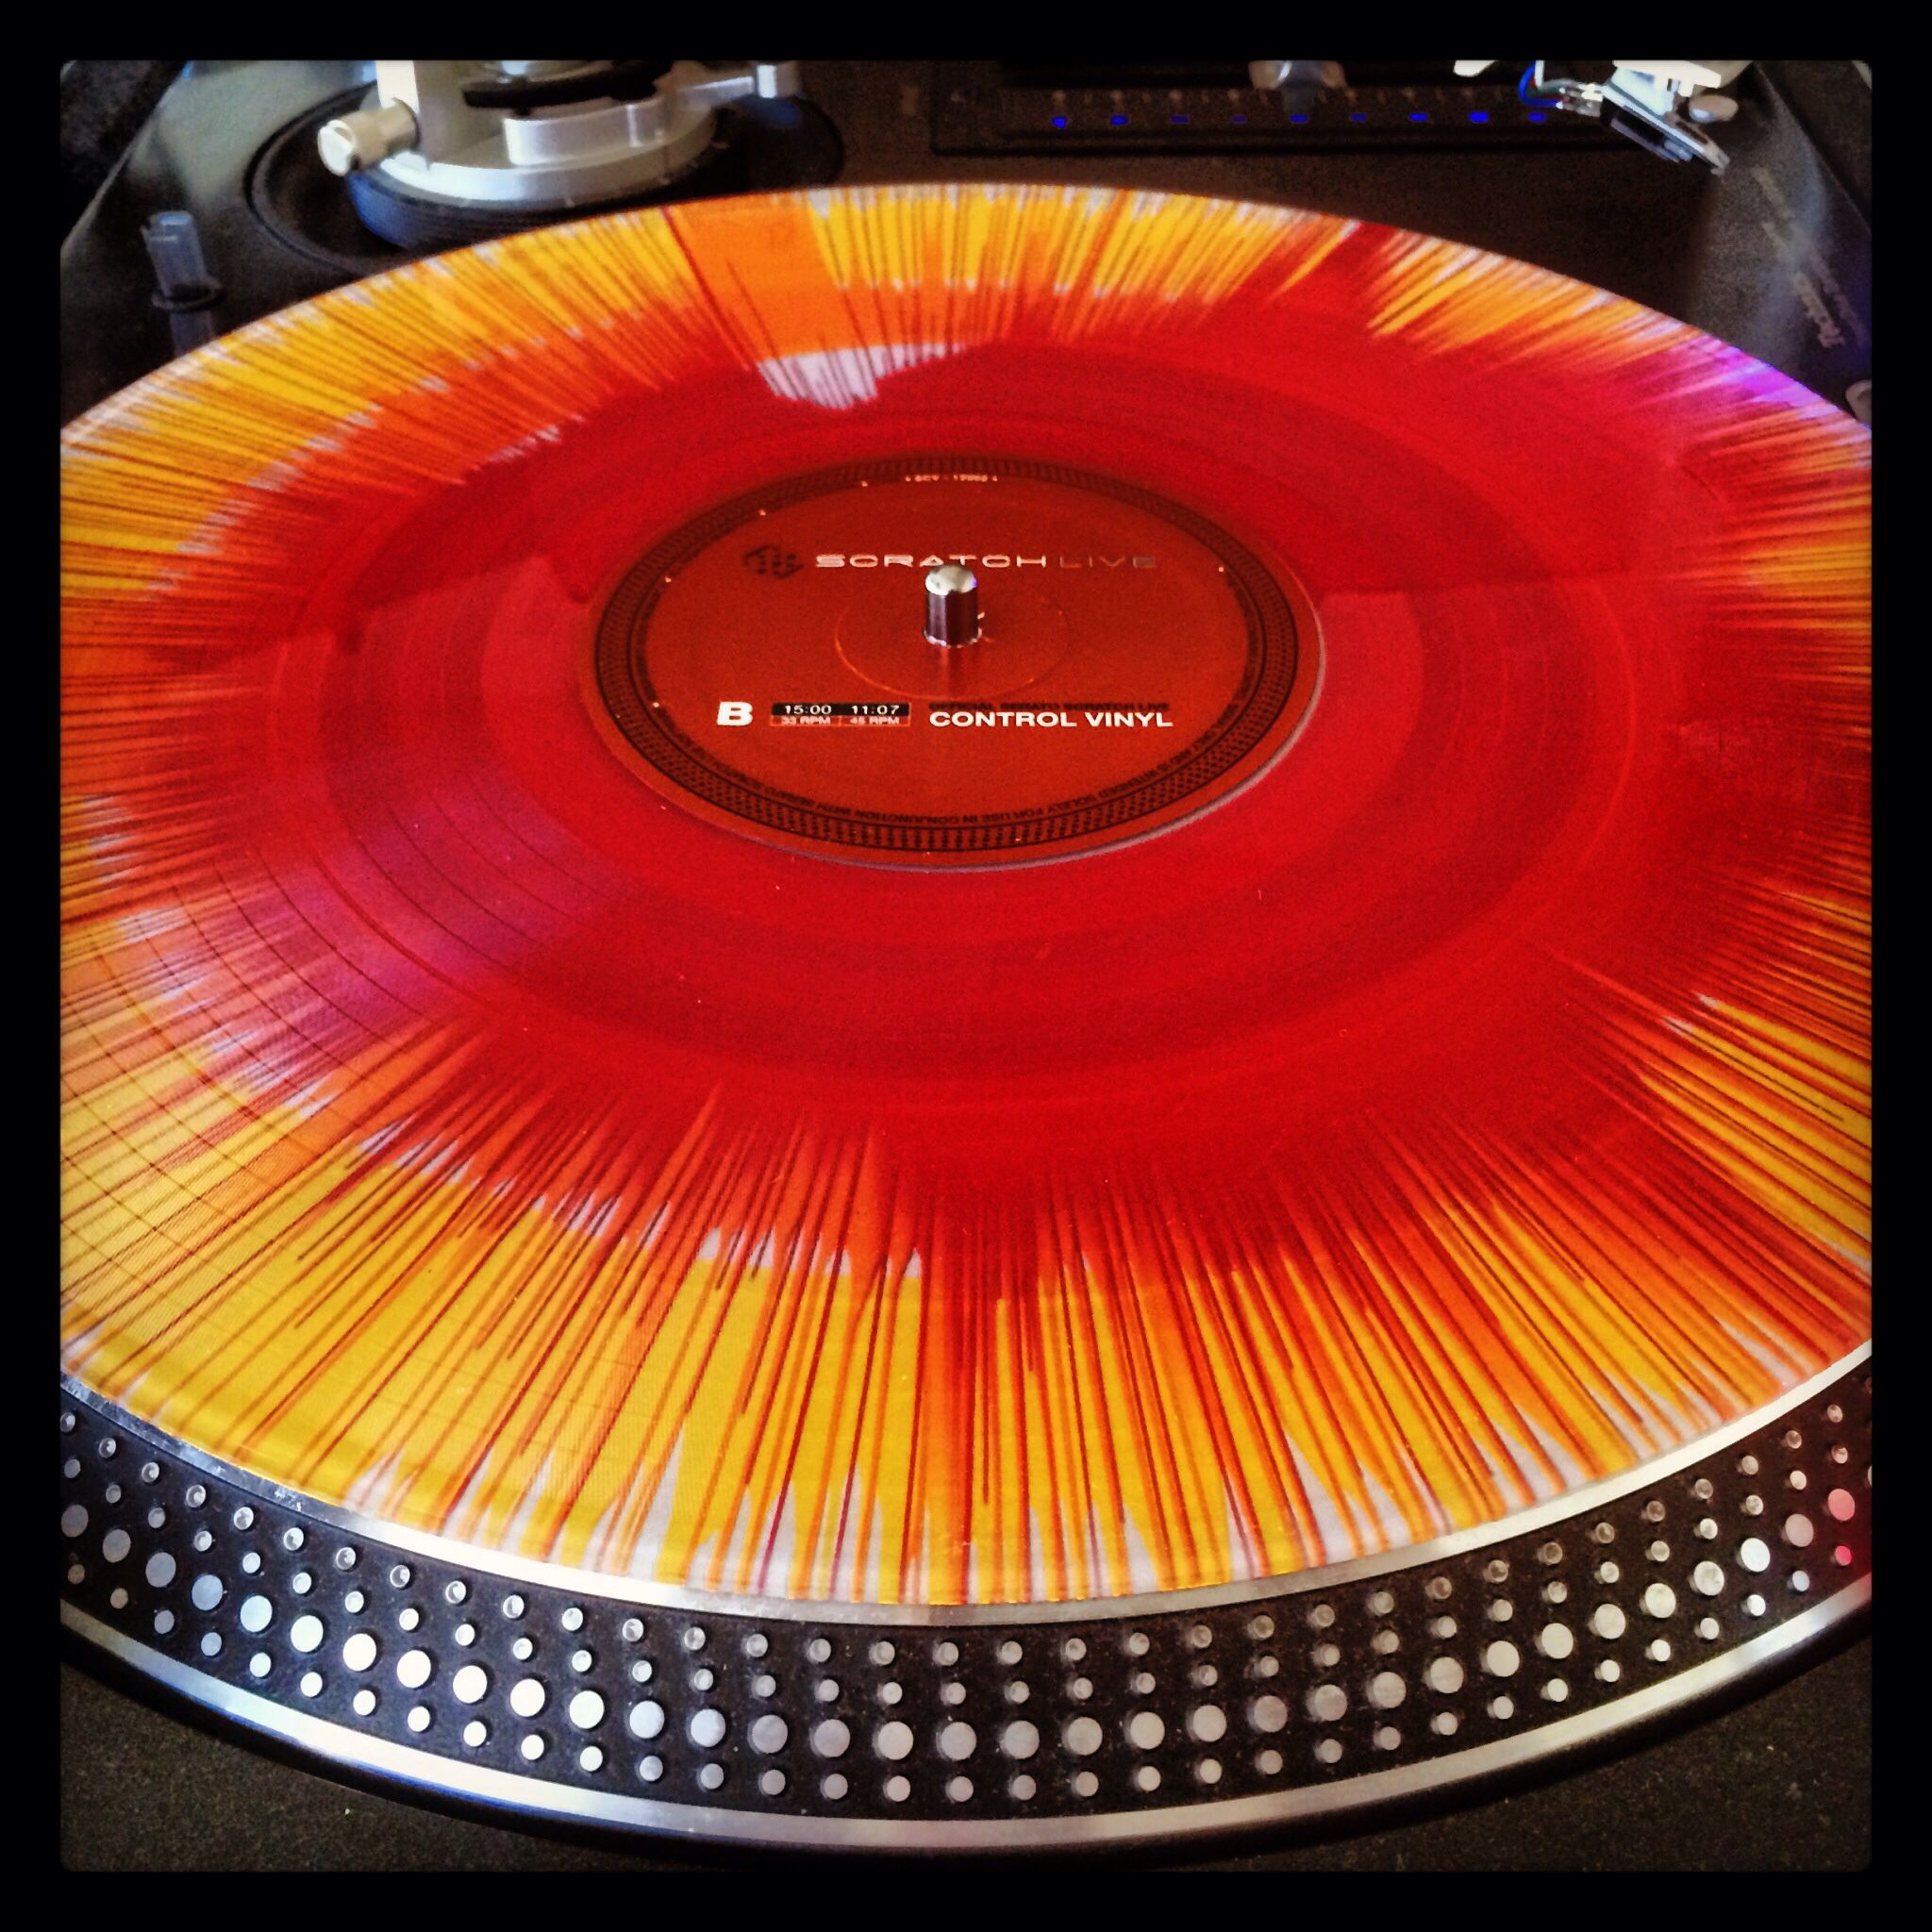 Custom Serato Rane Control Vinyl From Oj Dawoodi Turn Table Vinyl Vinyl Dj Equipment